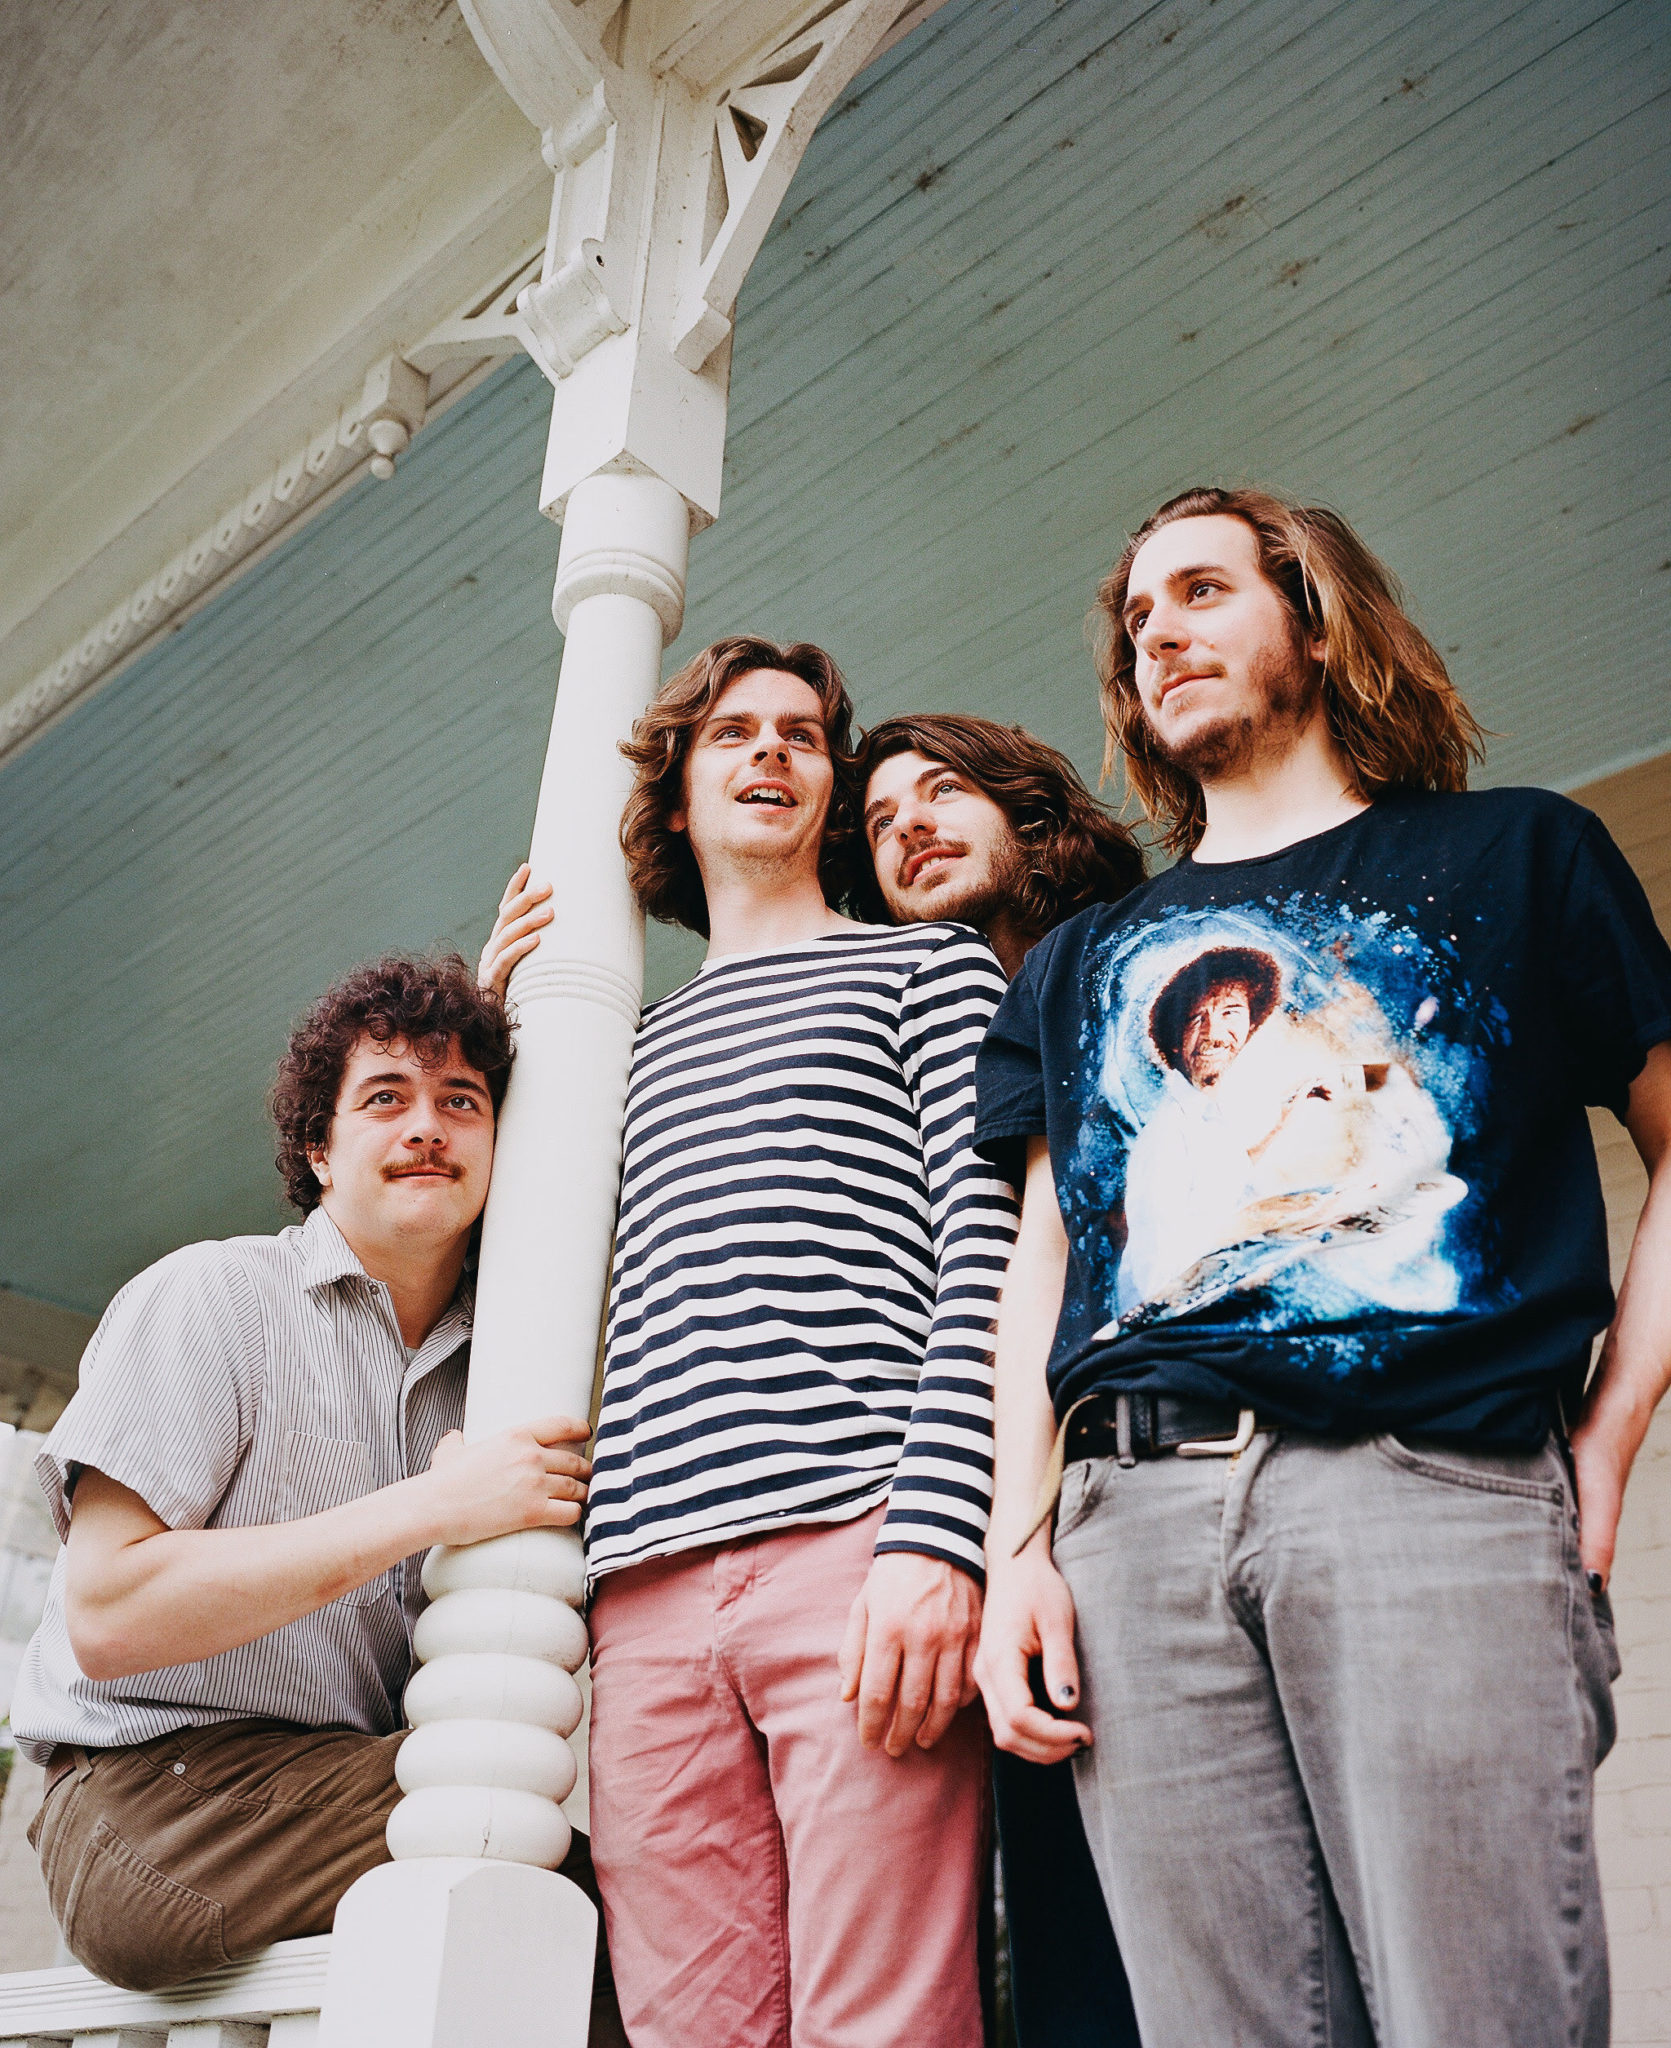 """INTERVIEW: The Districts on """"meeting great weirdos"""" and 'Popular Manipulations'"""